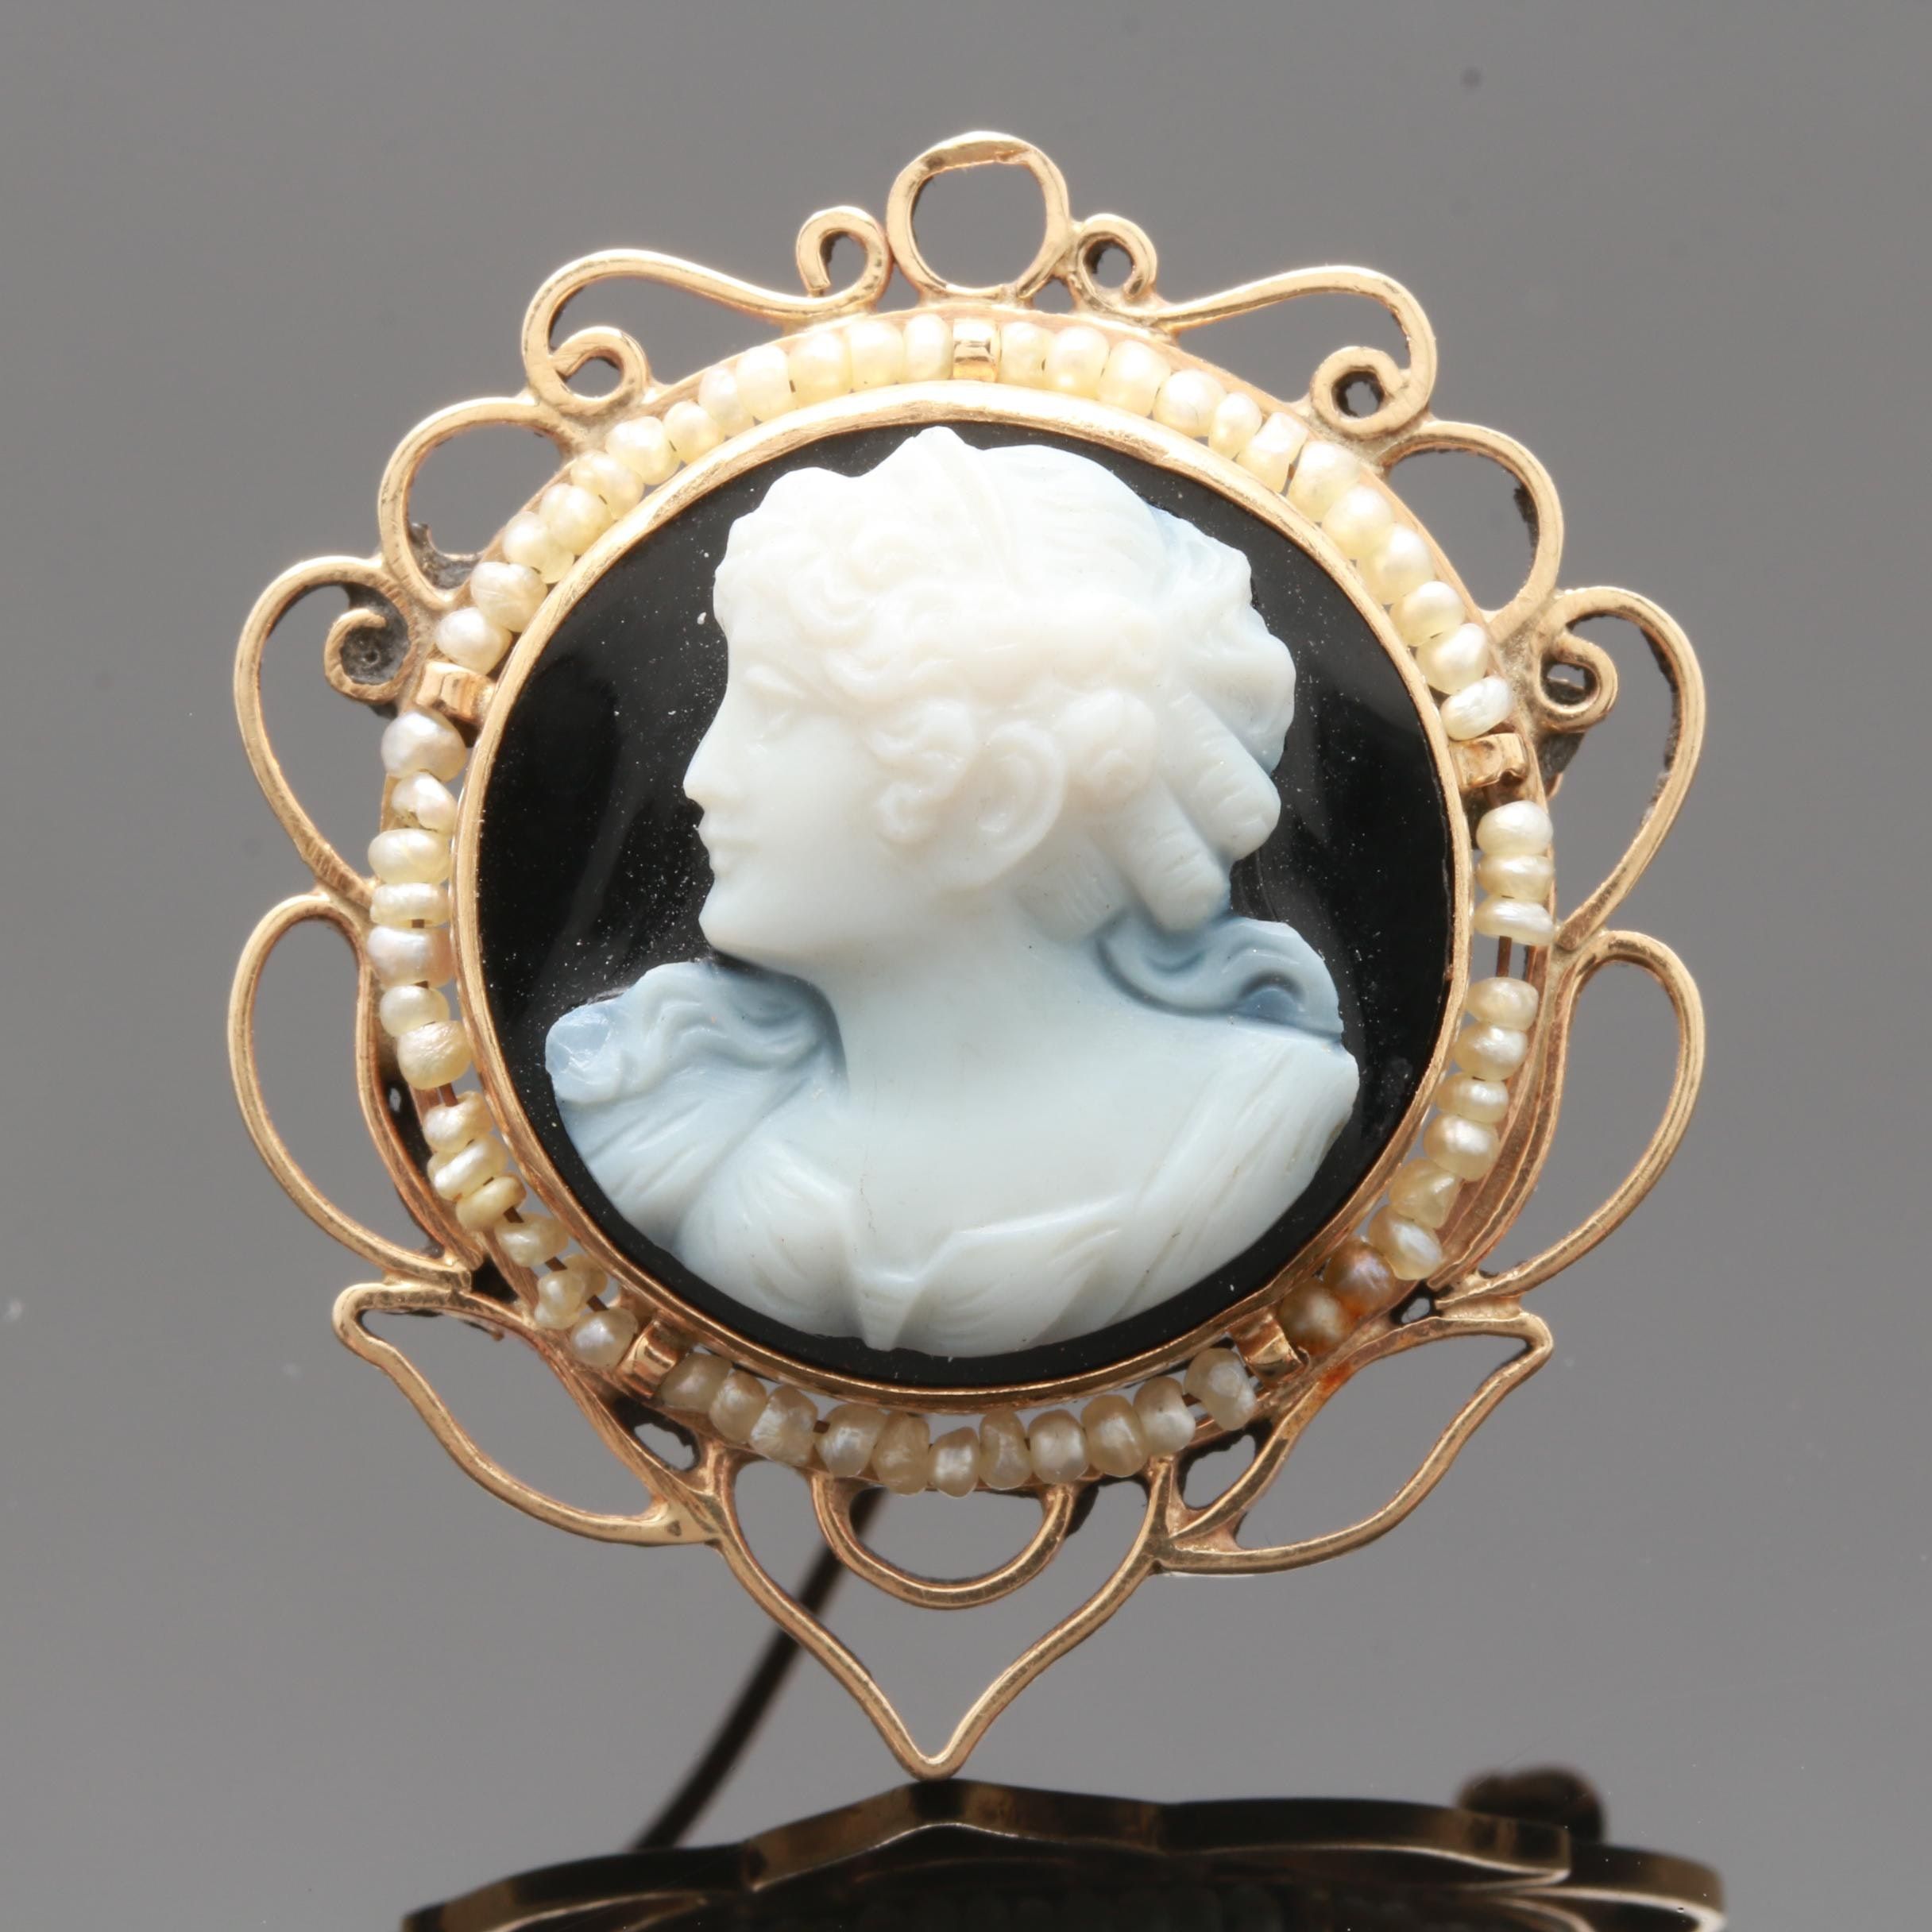 14K Yellow Gold Onyx and Seed Pearl Cameo Brooch